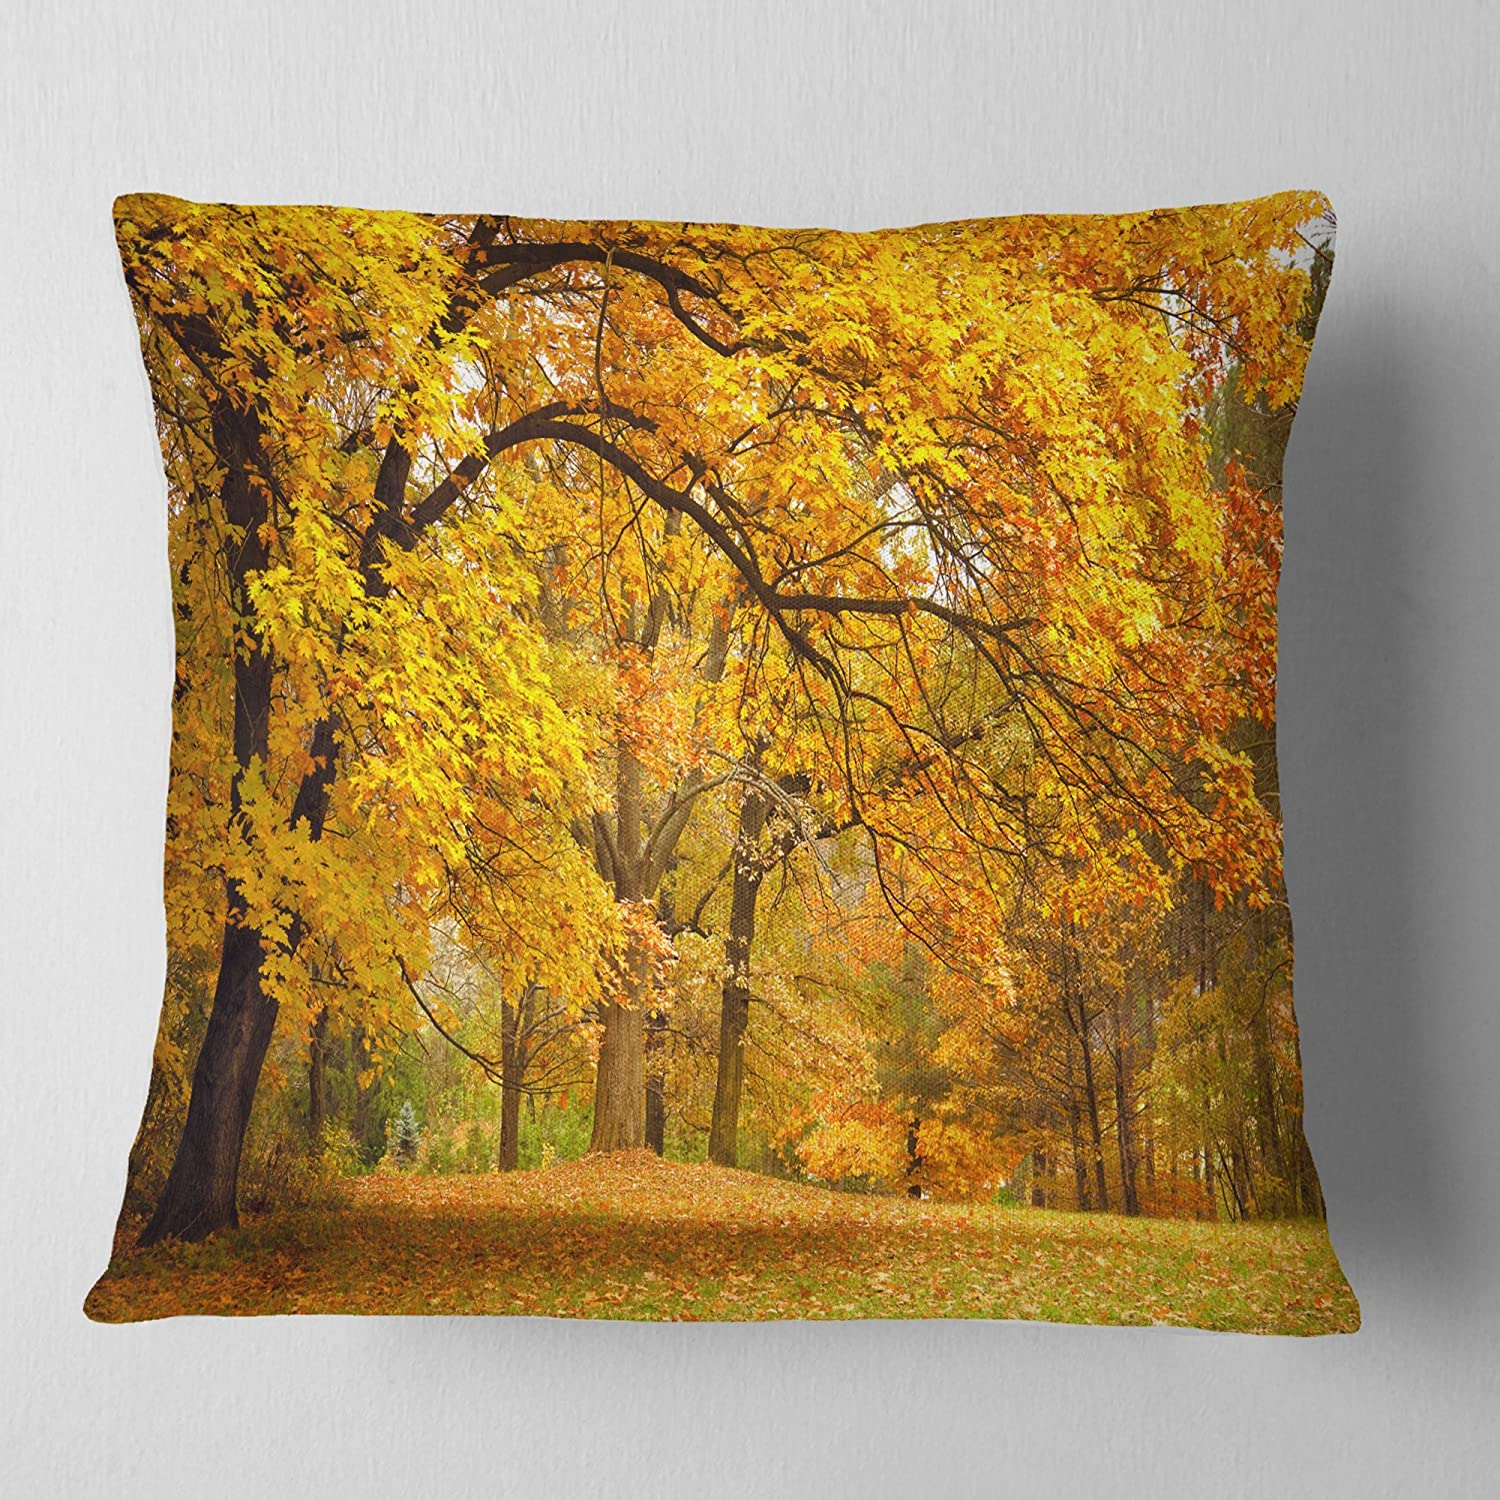 Designart CU6883-18-18 Golden Autumn Forest' Landscape Photography Cushion Cover for Living Room, Sofa Throw Pillow 18 in. x 18 in. in